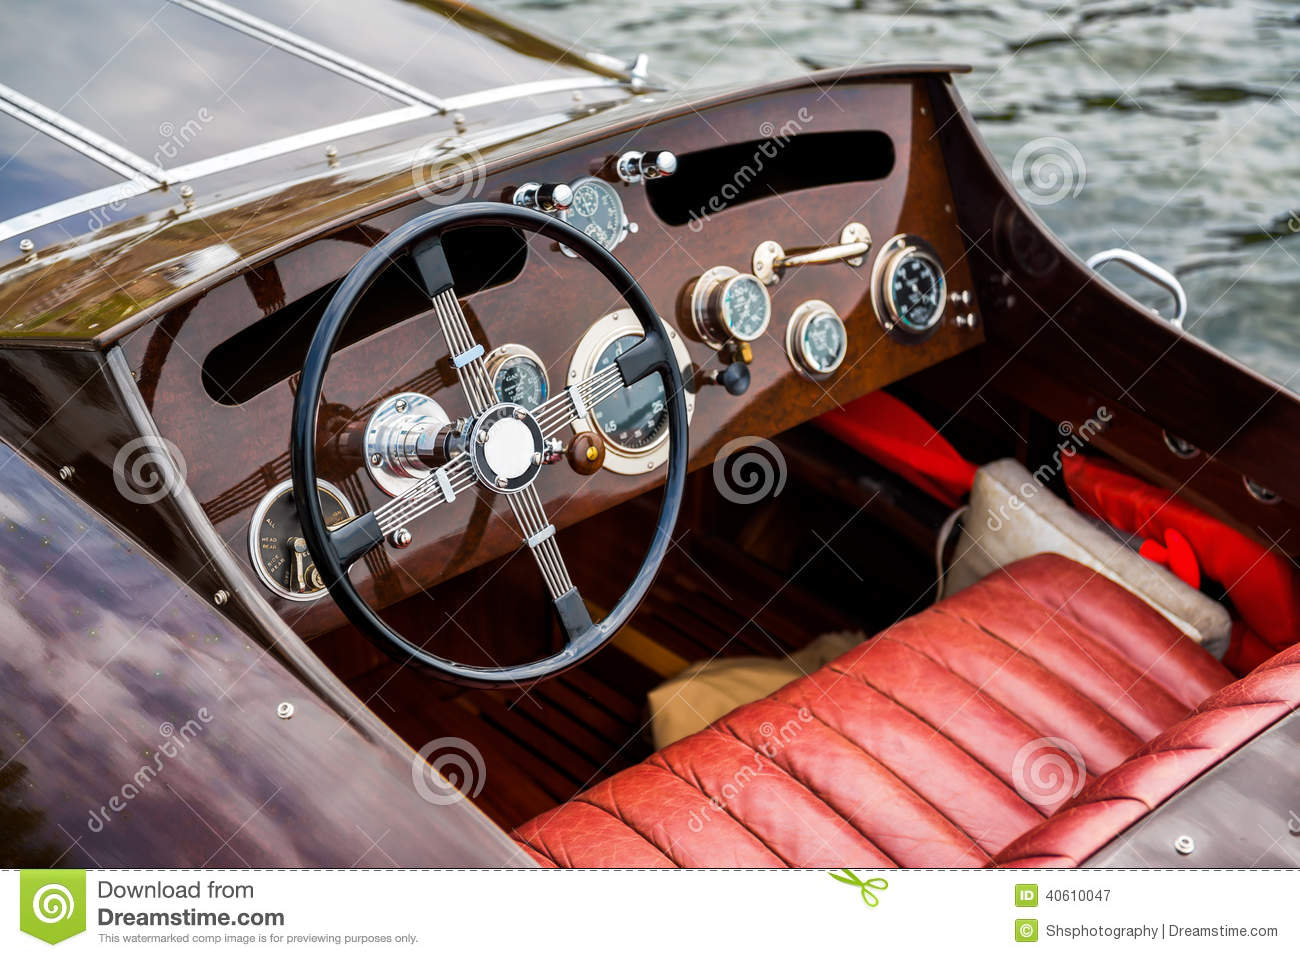 Wooden Motor Boat Dashboard Stock Photo - Image: 40610047